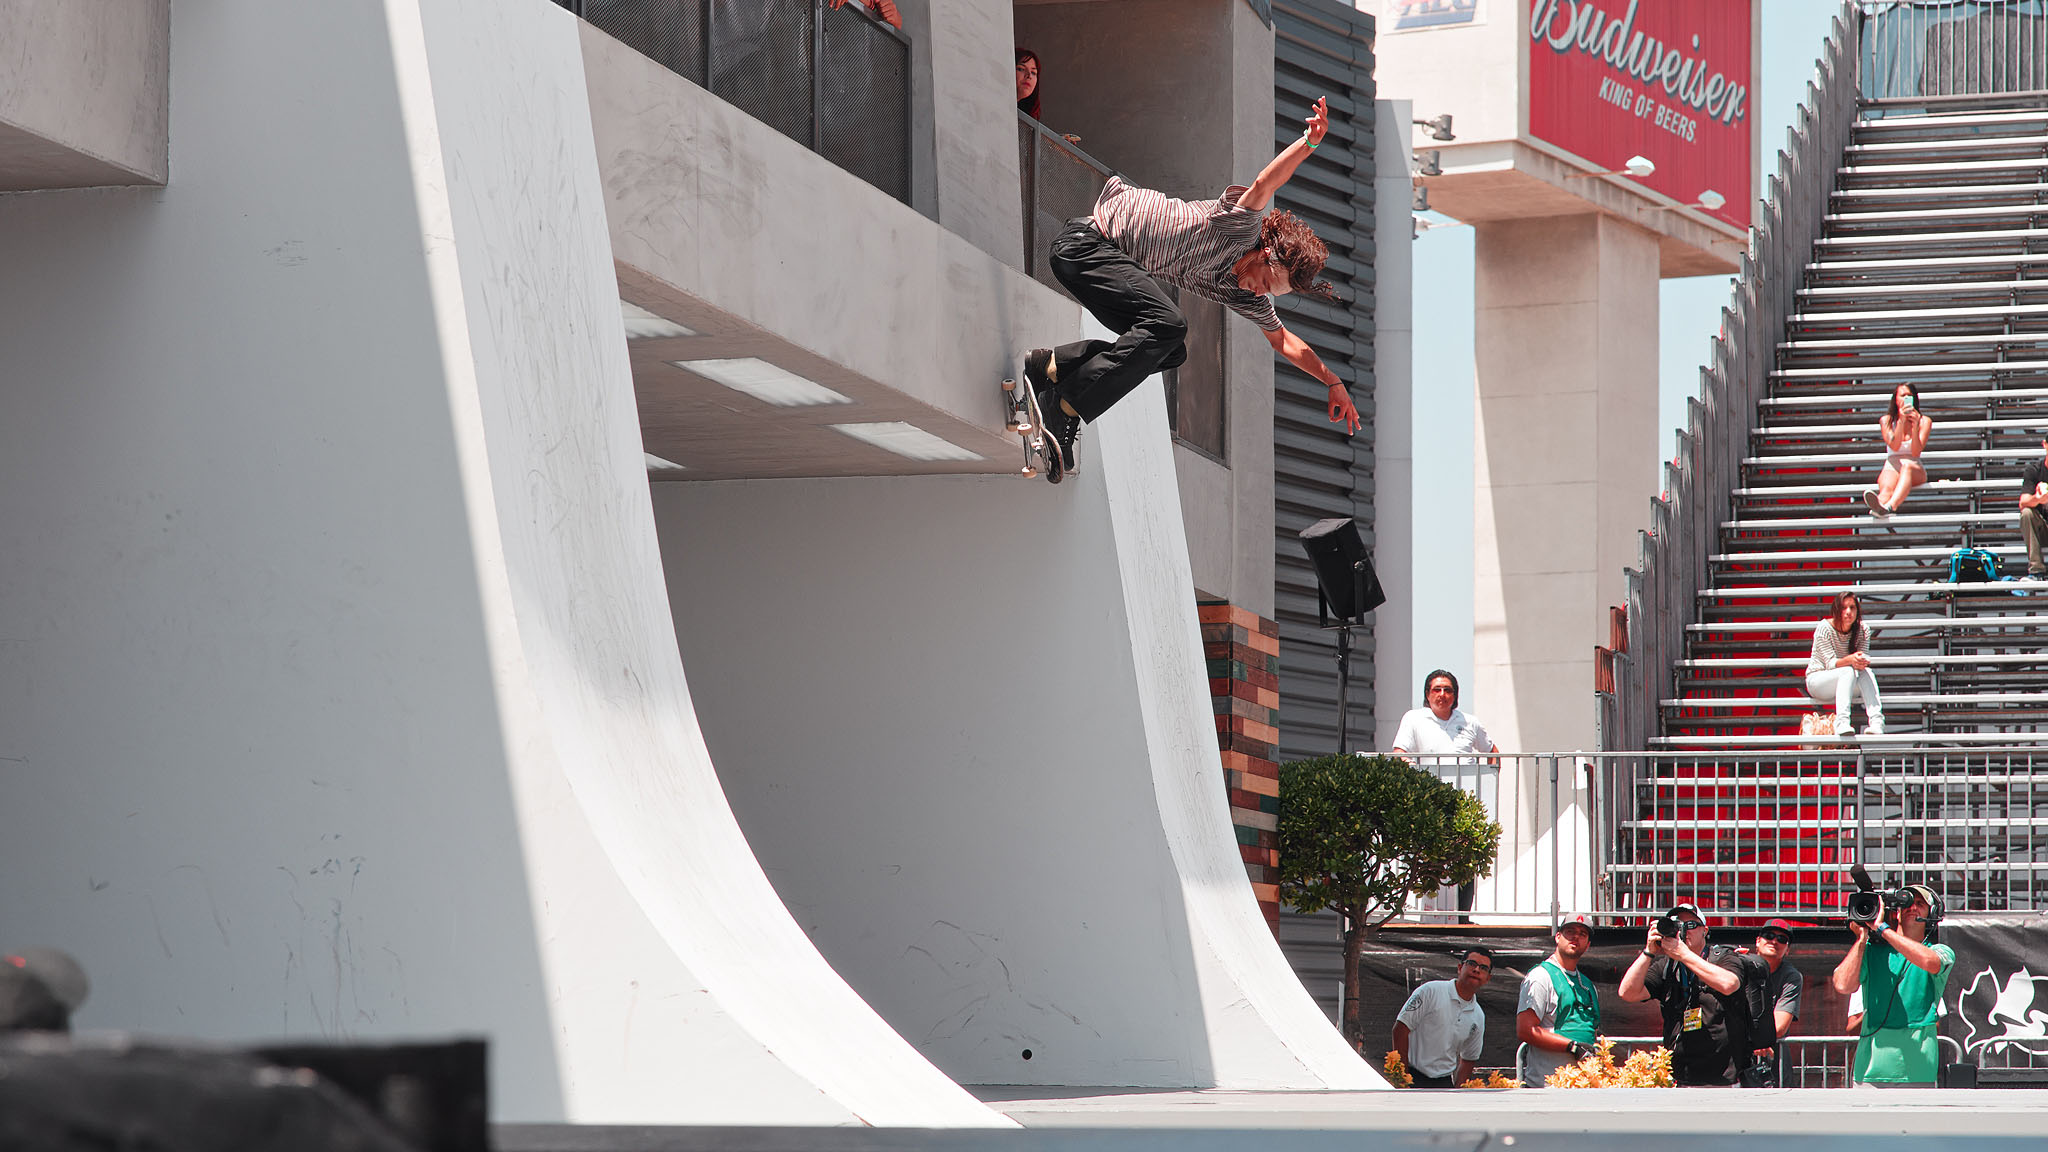 Evan Smith didn't get the top qualifying spot in SLS Select on Thursday, so we won't be seeing him in Street League at X Games on Friday, but he came close. He definitely was the crowd favorite.